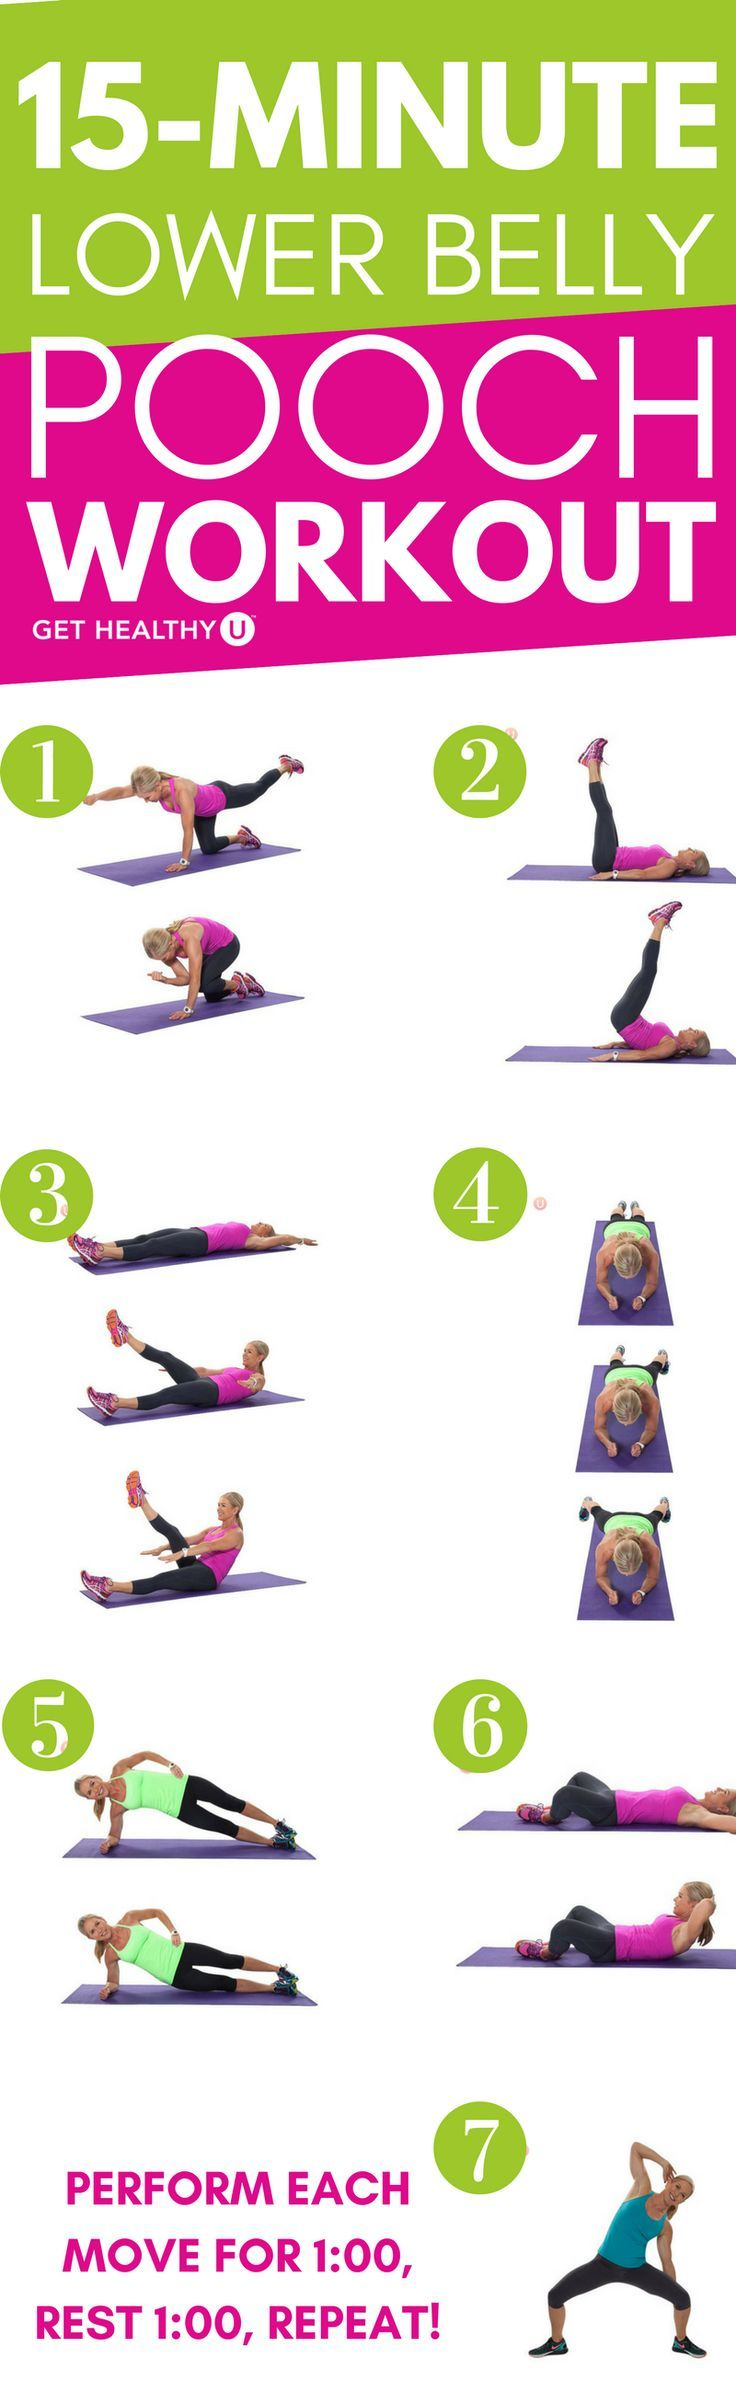 15 minute workout to get rid of lower belly pooch belly pooch 15 minute workout to get rid of lower belly pooch ccuart Images